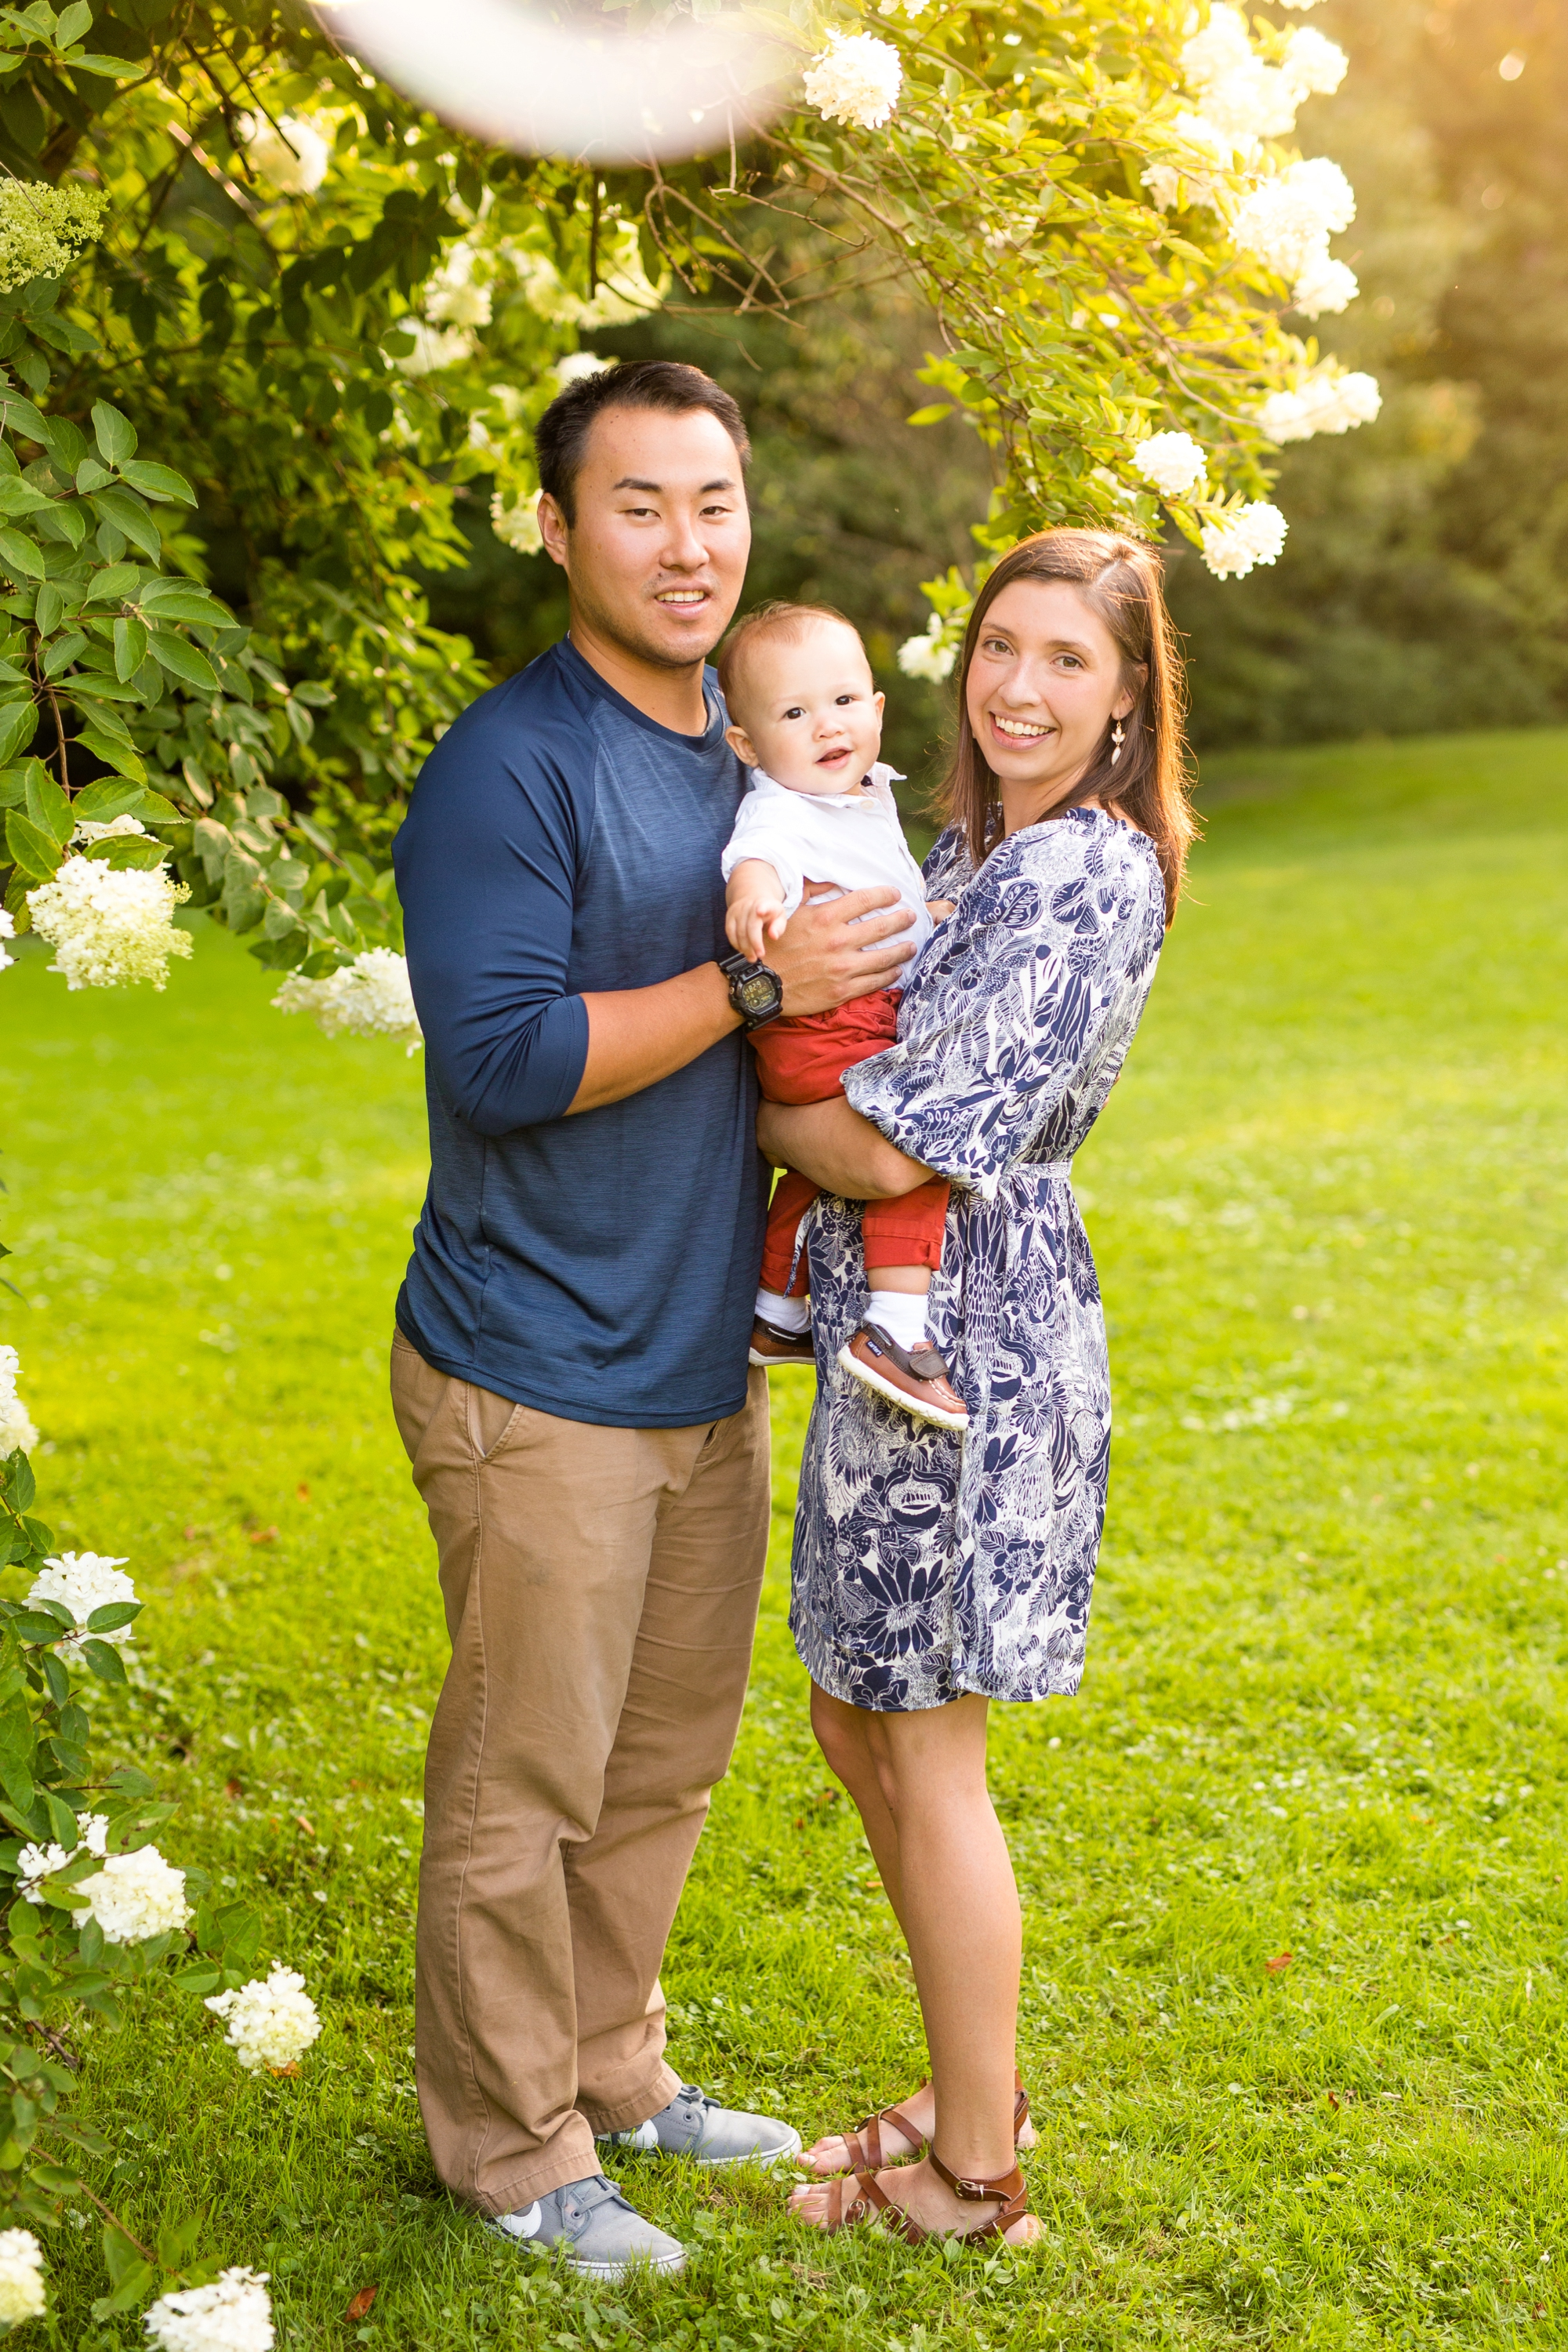 pittsburgh family photographer, cranberry township family photographer, wexford family photographer, mcconnells mill family photos